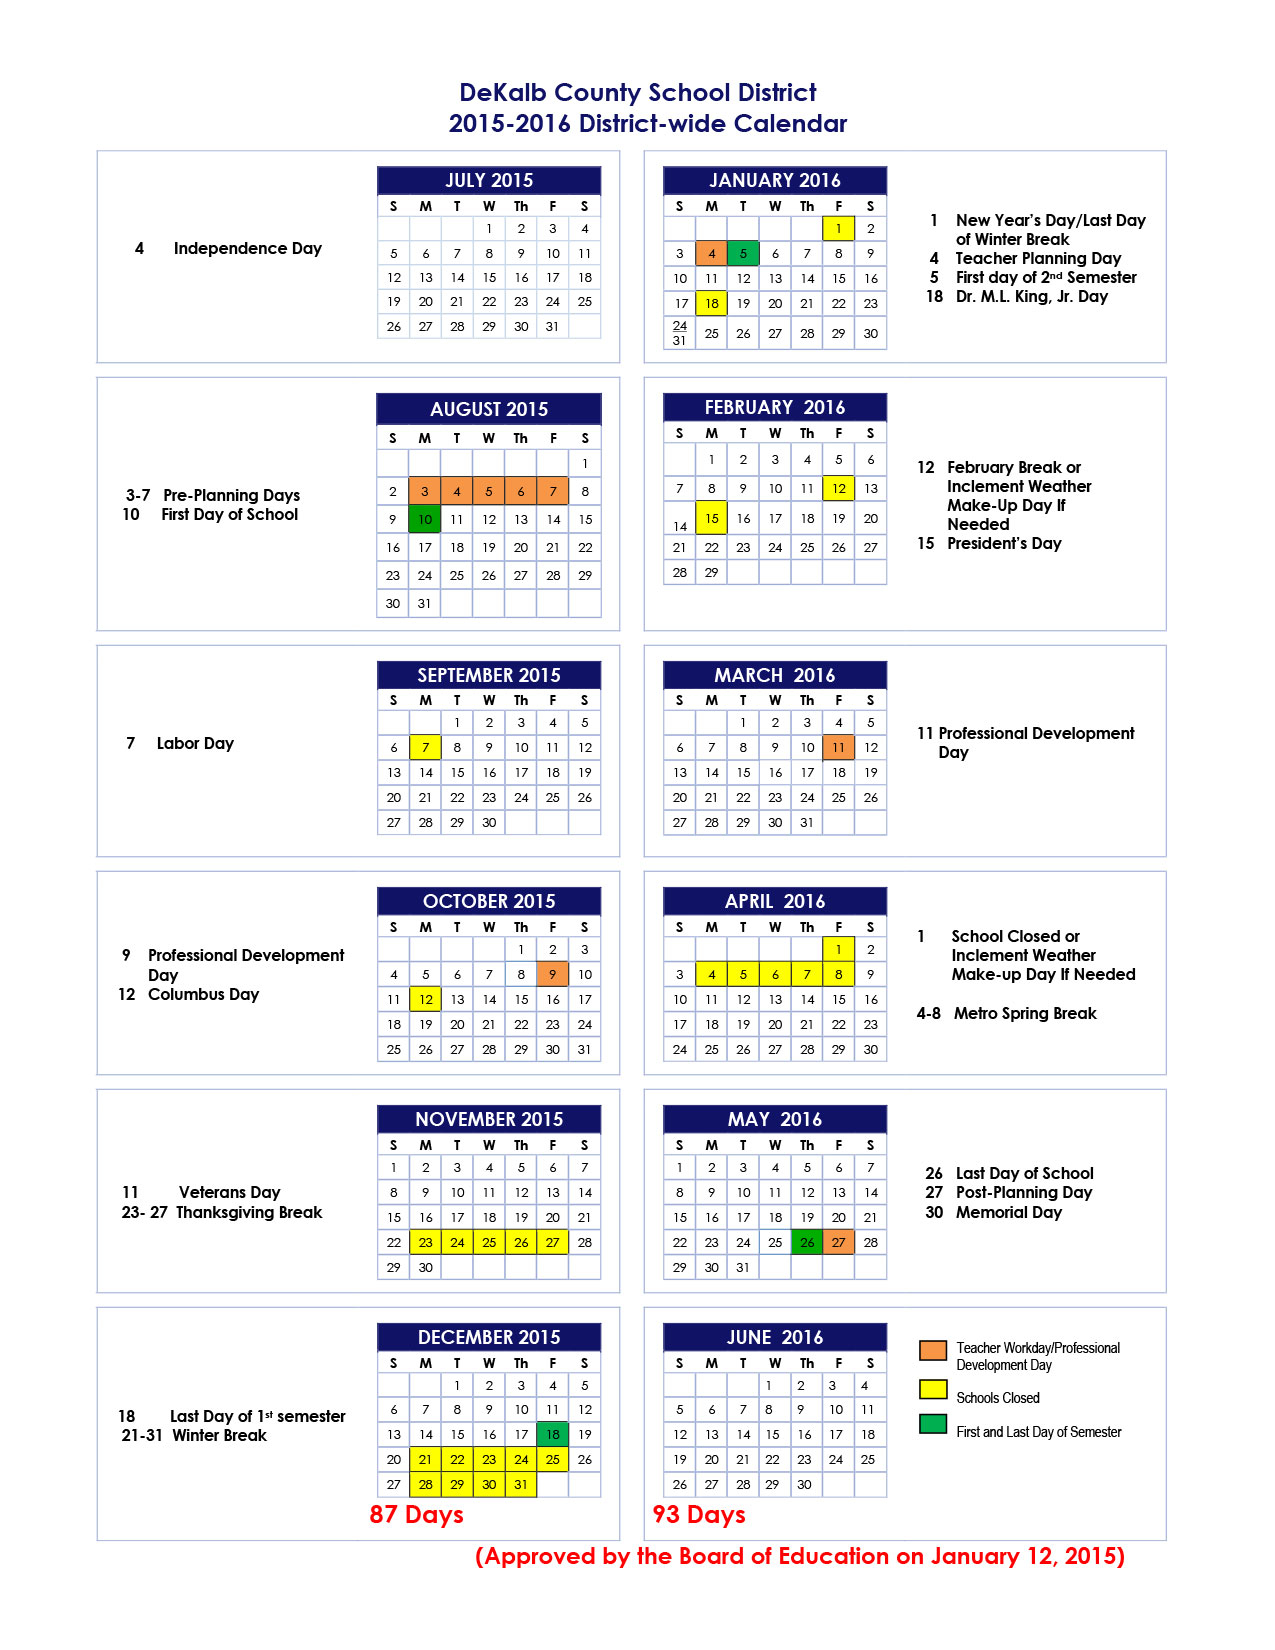 Yangah Solen: Nyc Doe Calendar Throughout Nyc Doe Calendar 2015 2020